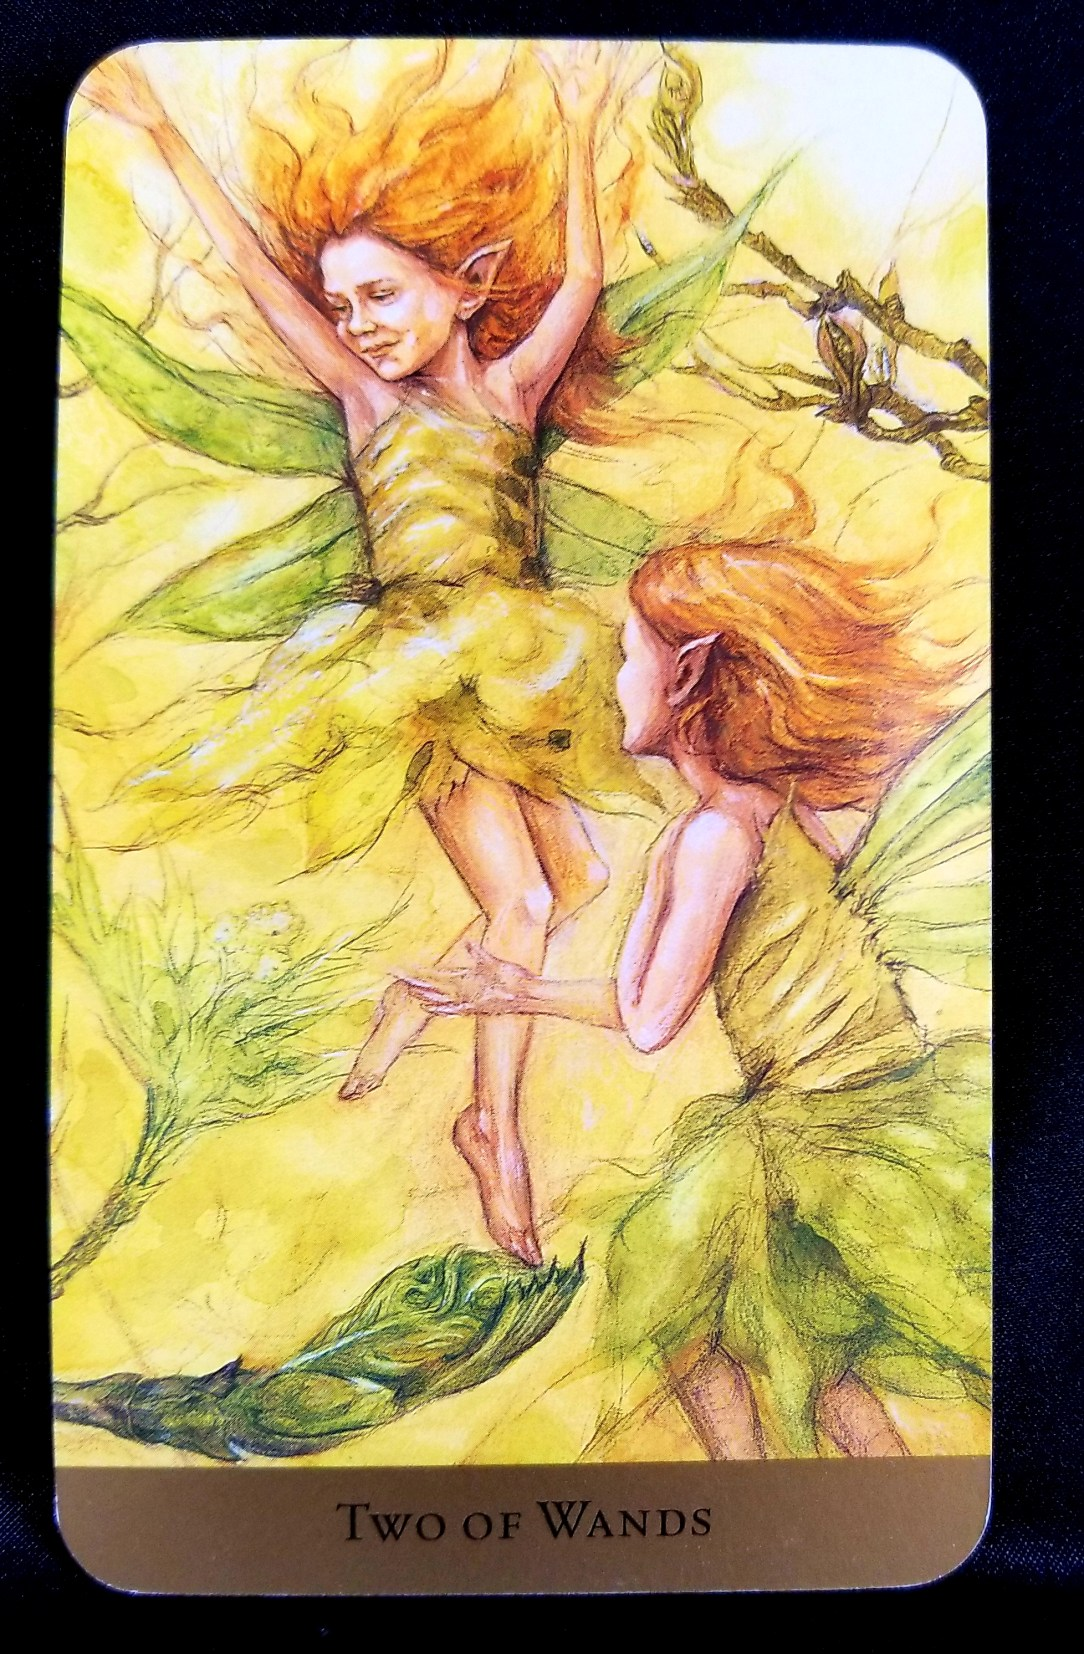 Two of Wands- Two sprites dressed like flowers and bathed in sunshine